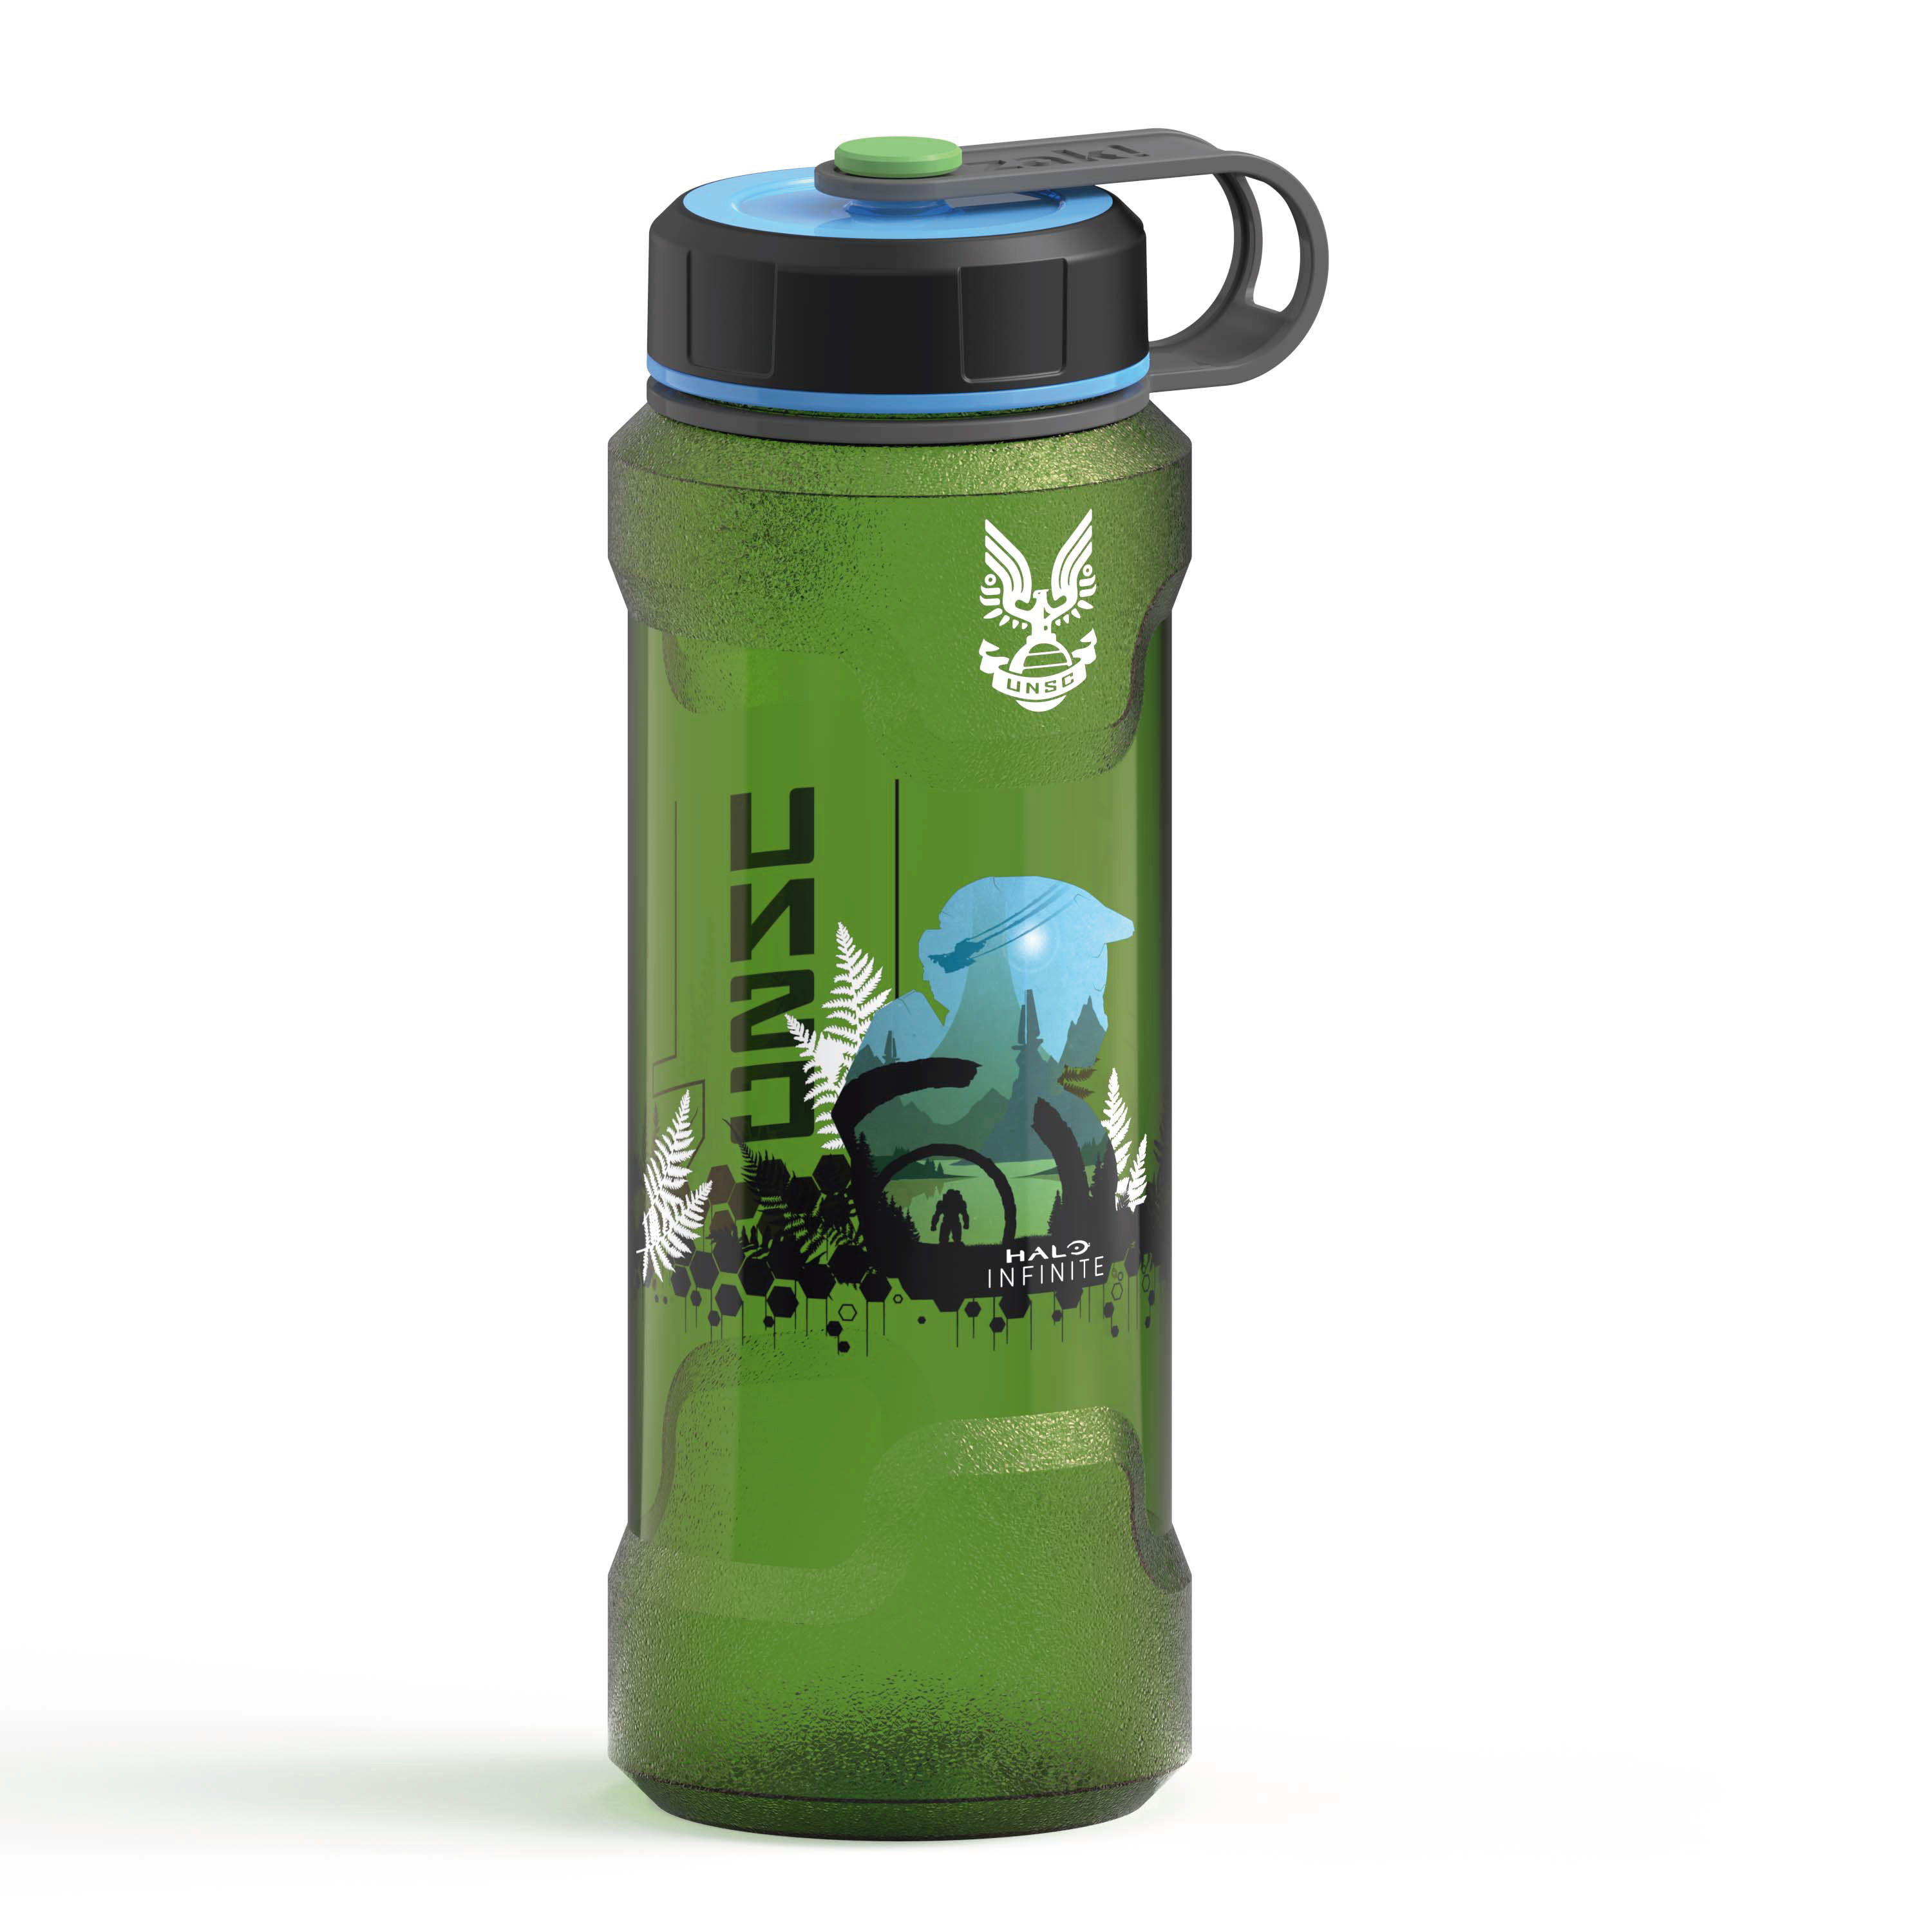 Halo 36 ounce Reusable Plastic Water Bottle, United Nations Space Command slideshow image 2